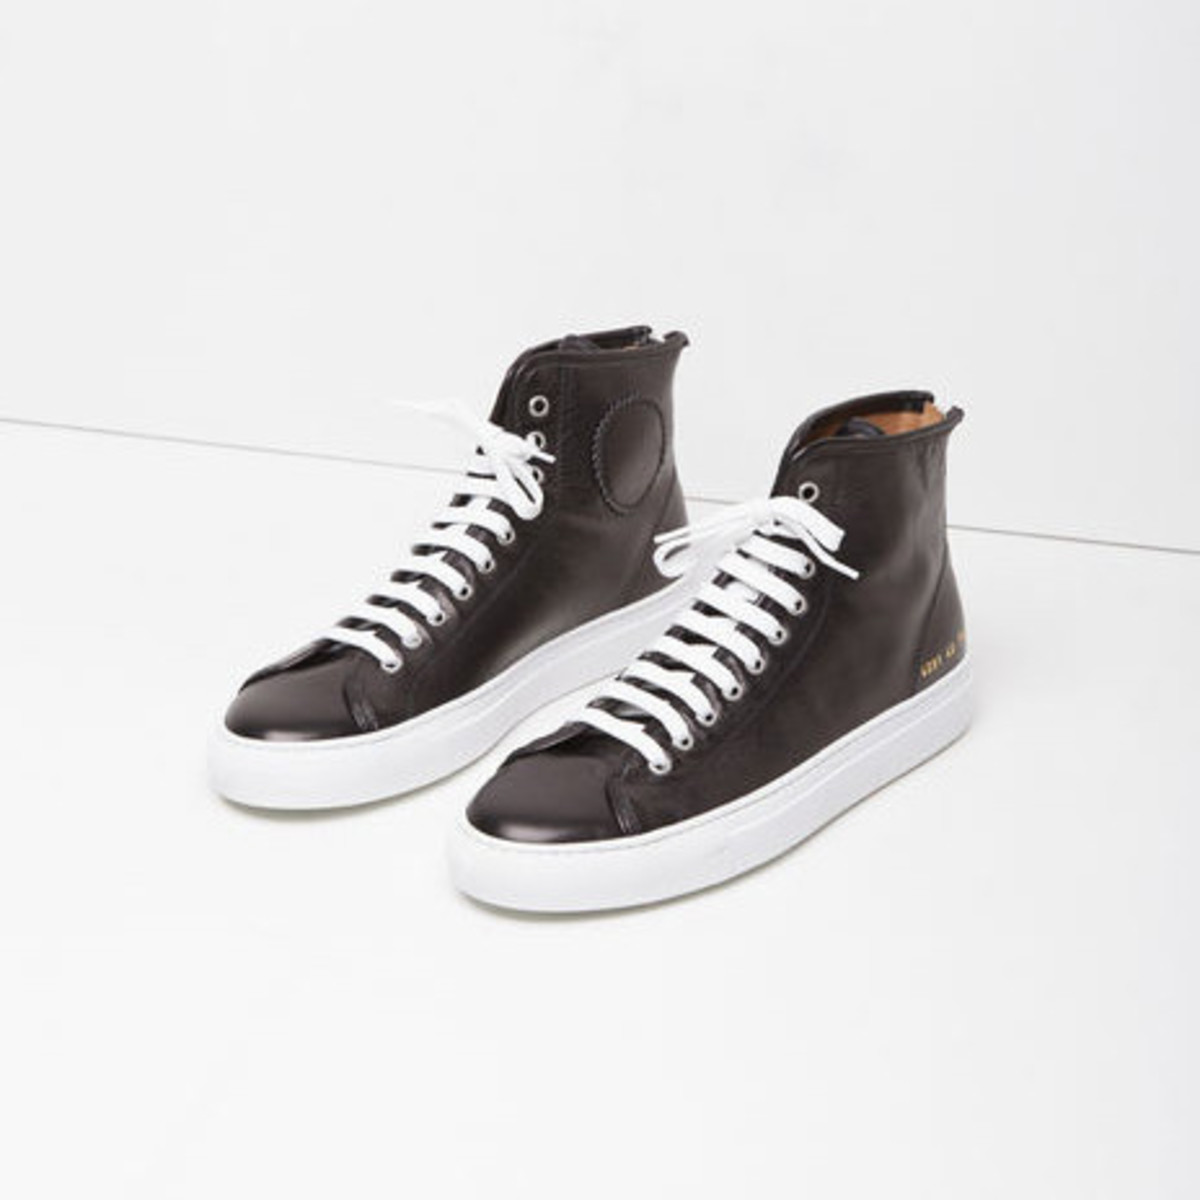 common projects tournament hight top sneakers garmentory. Black Bedroom Furniture Sets. Home Design Ideas